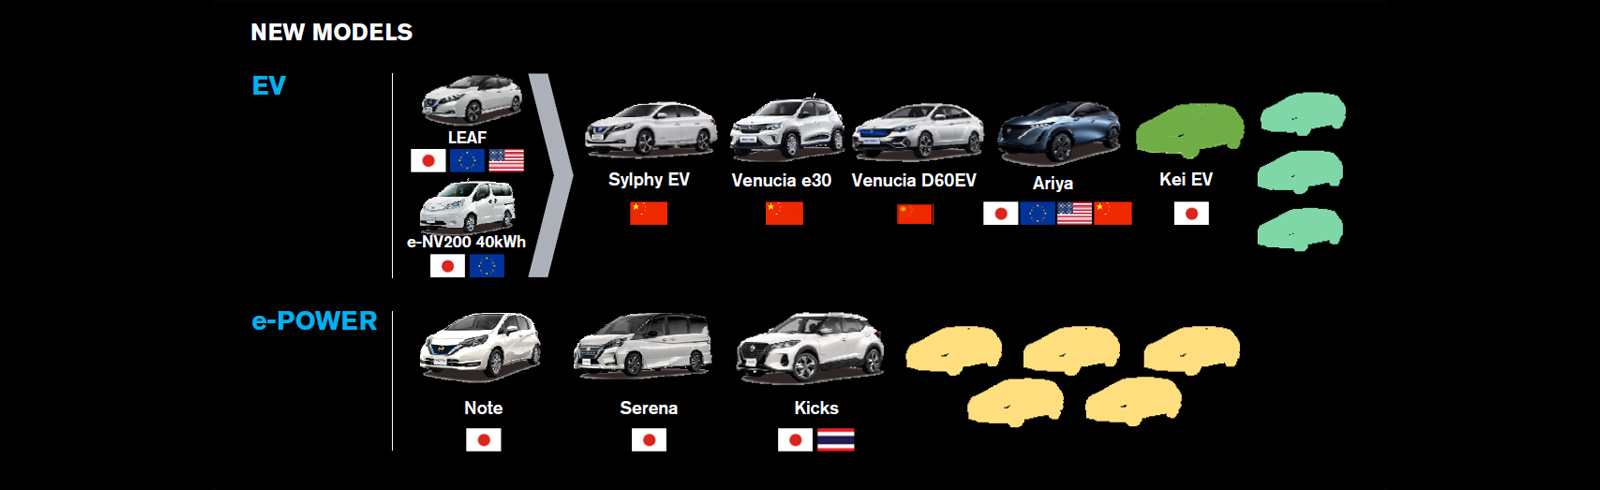 Nissan's strategy includes more than 8 new EVs by 2023